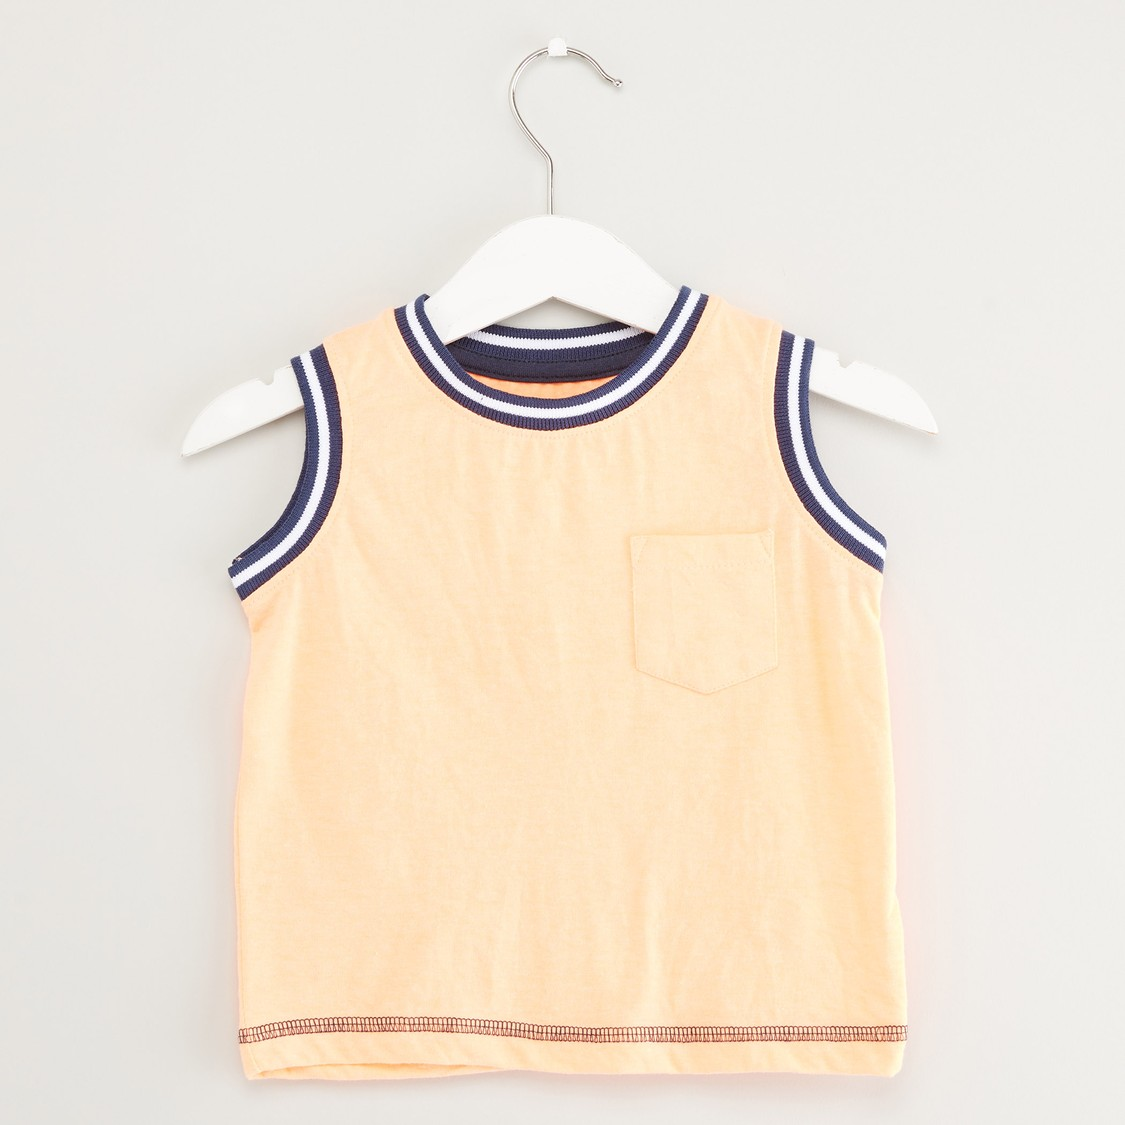 Textured Sleeveless Vest with Round Neck and Chest Pocket